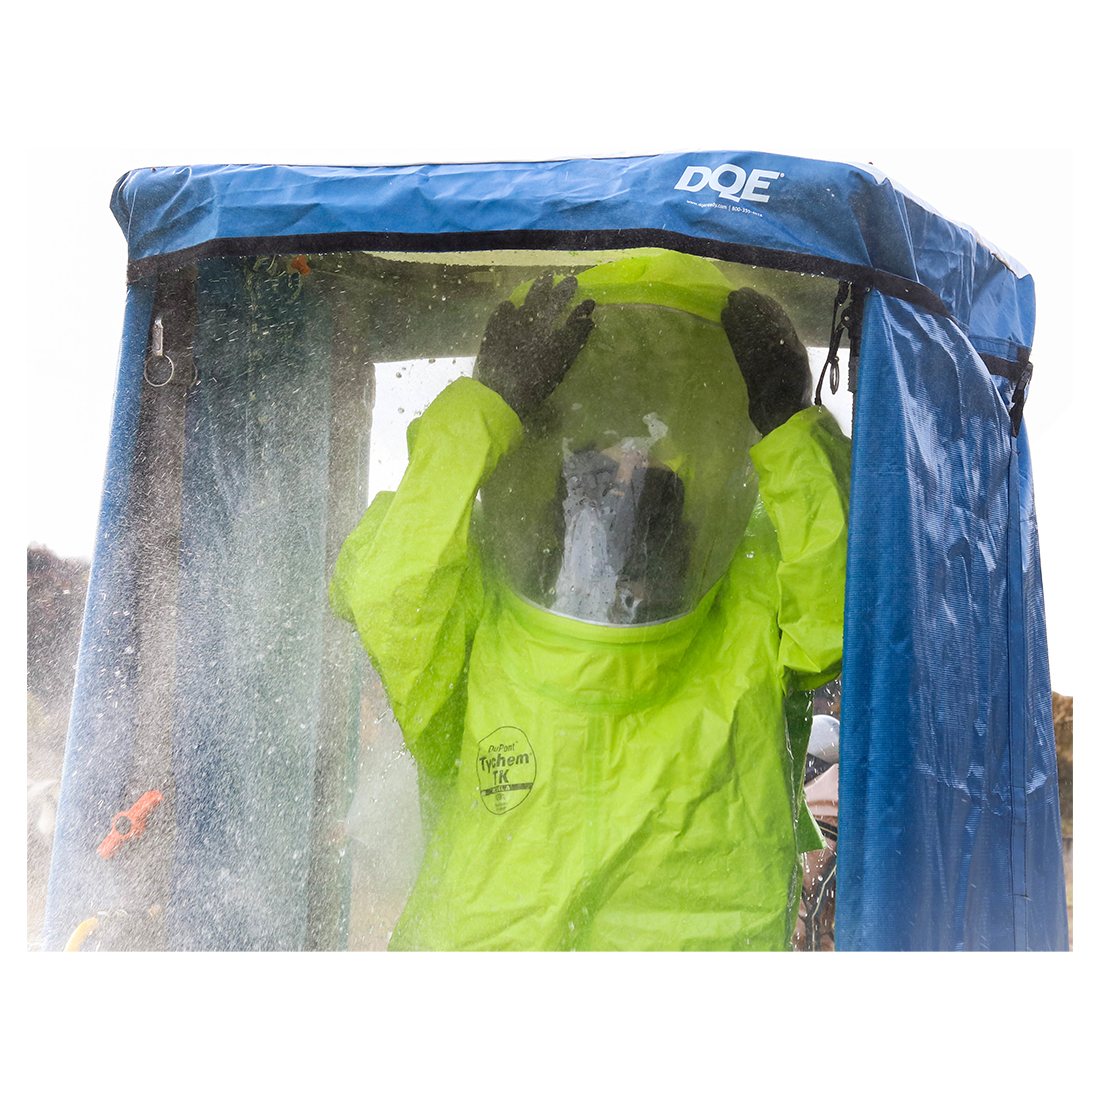 Hazardous Materials Shower in use image